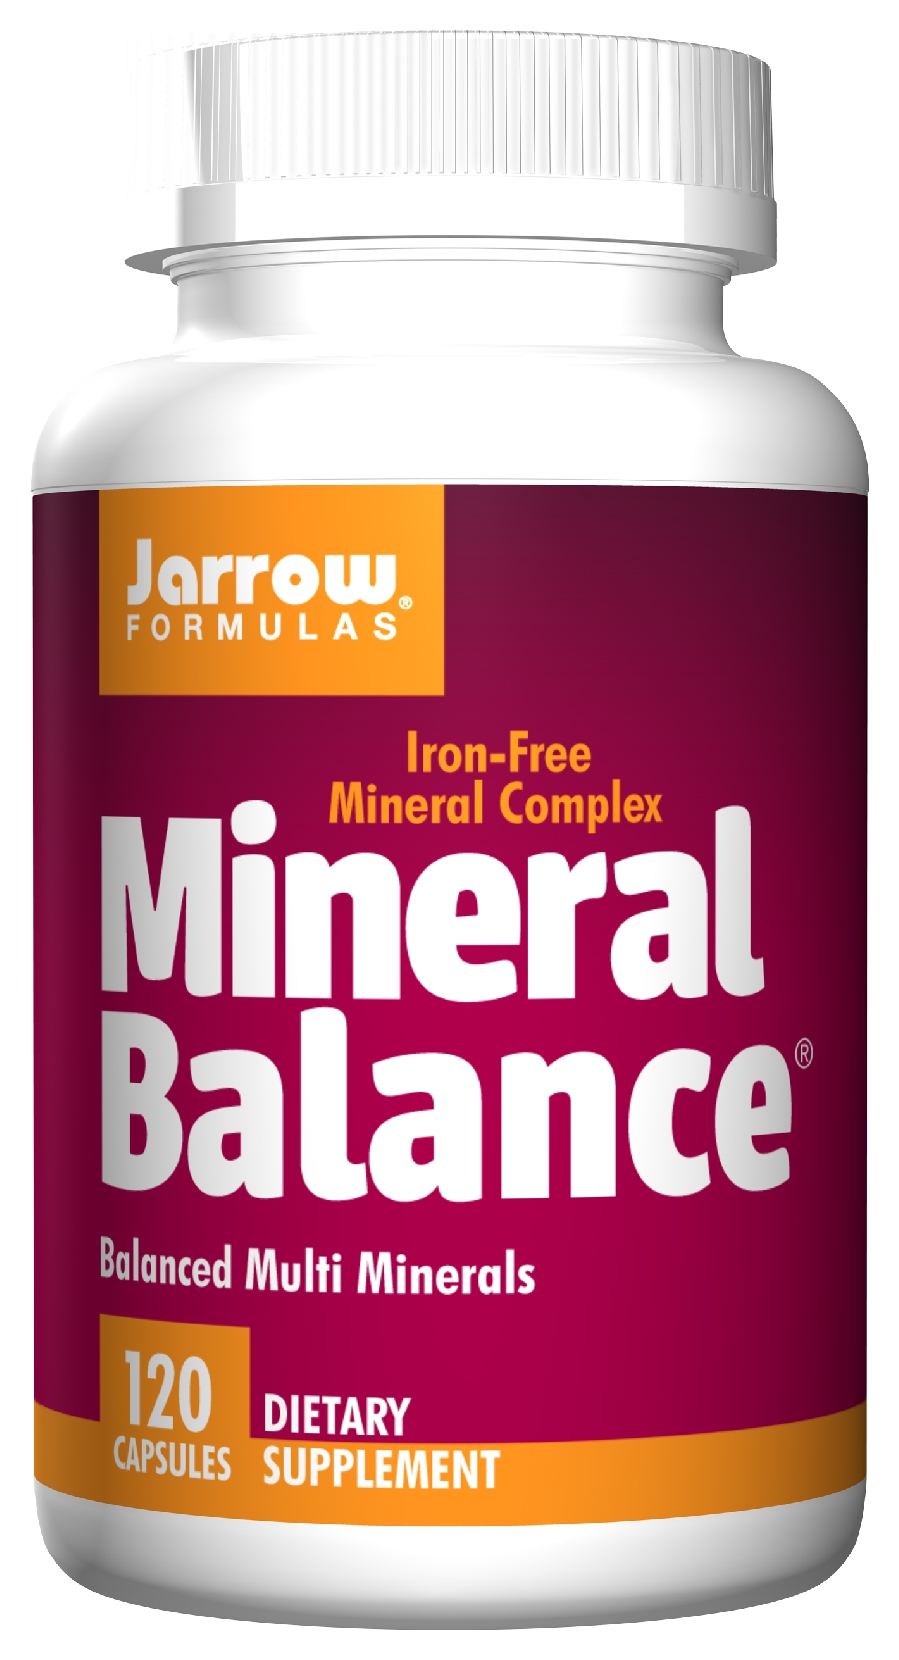 Mineral Balance 120 caps by Jarrow Formulas (expires 10/2014)